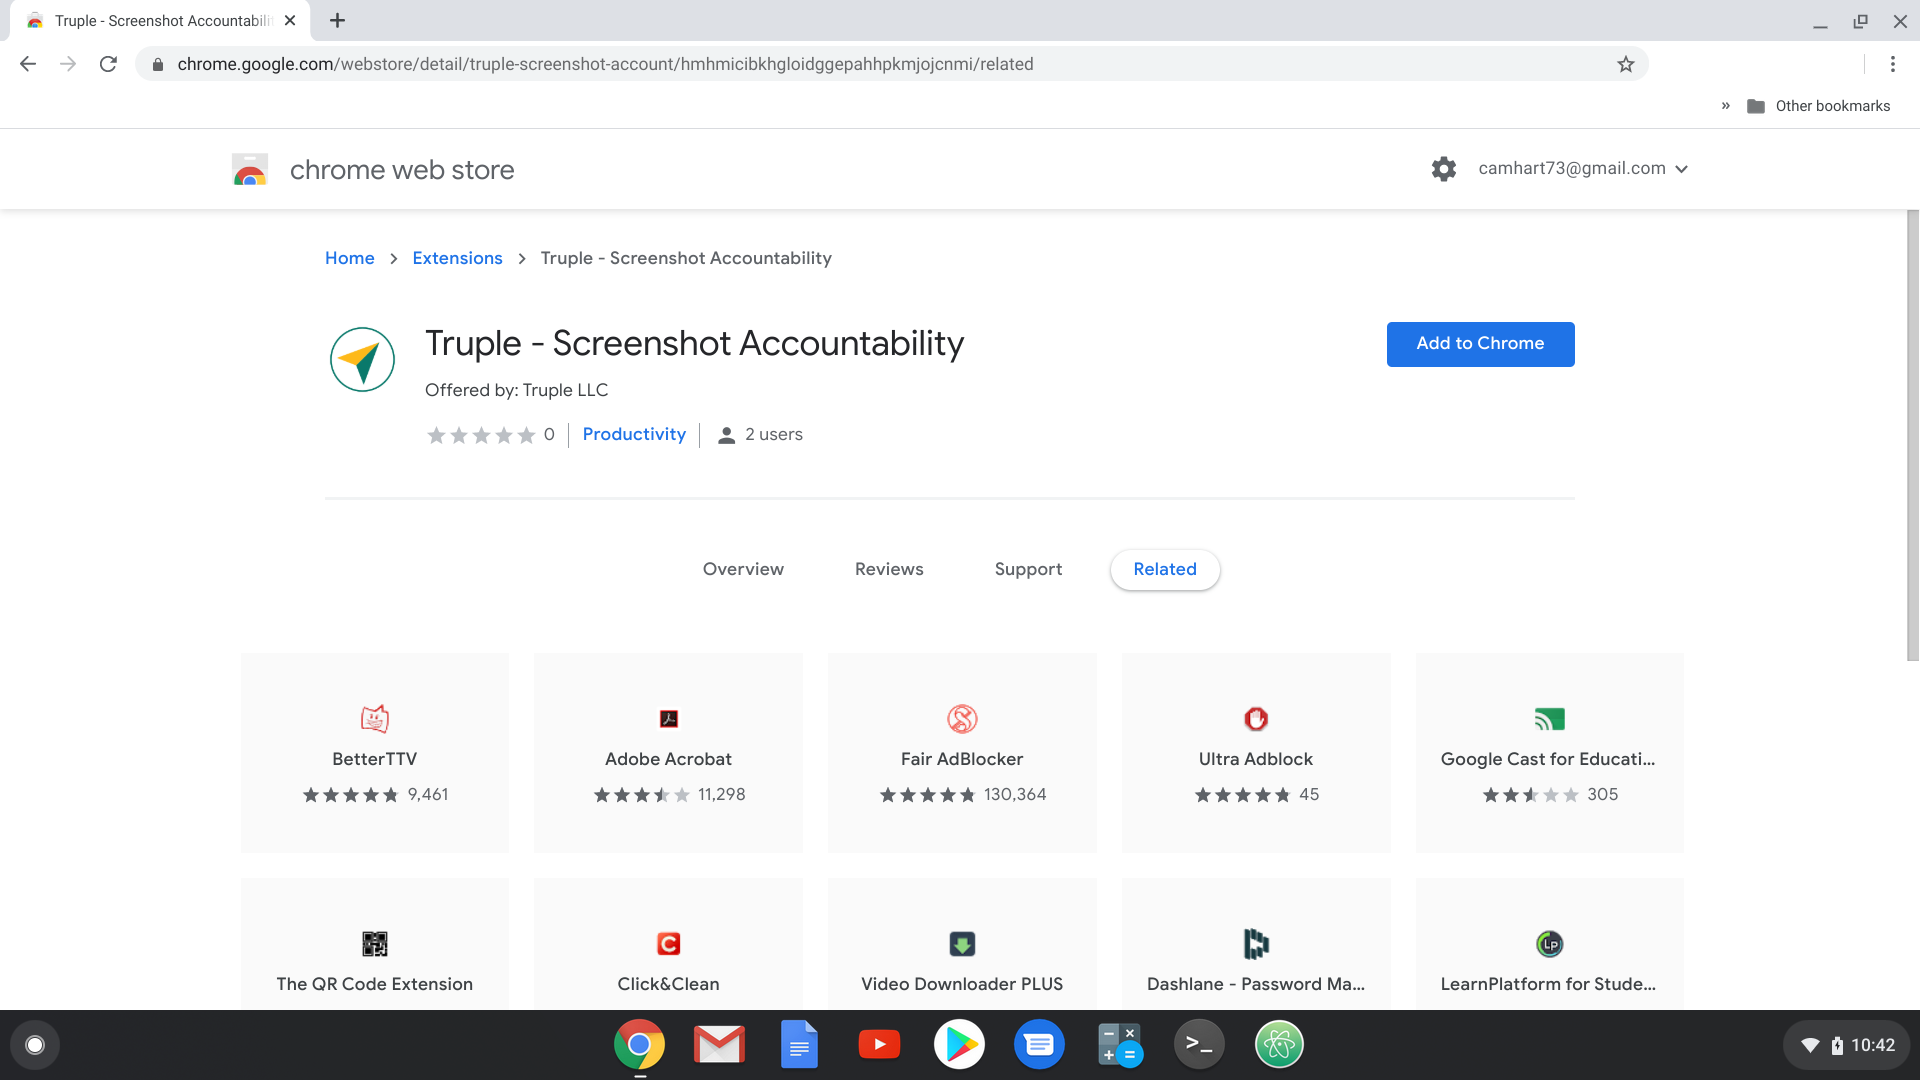 truple screenshot accountability in the chrome web store